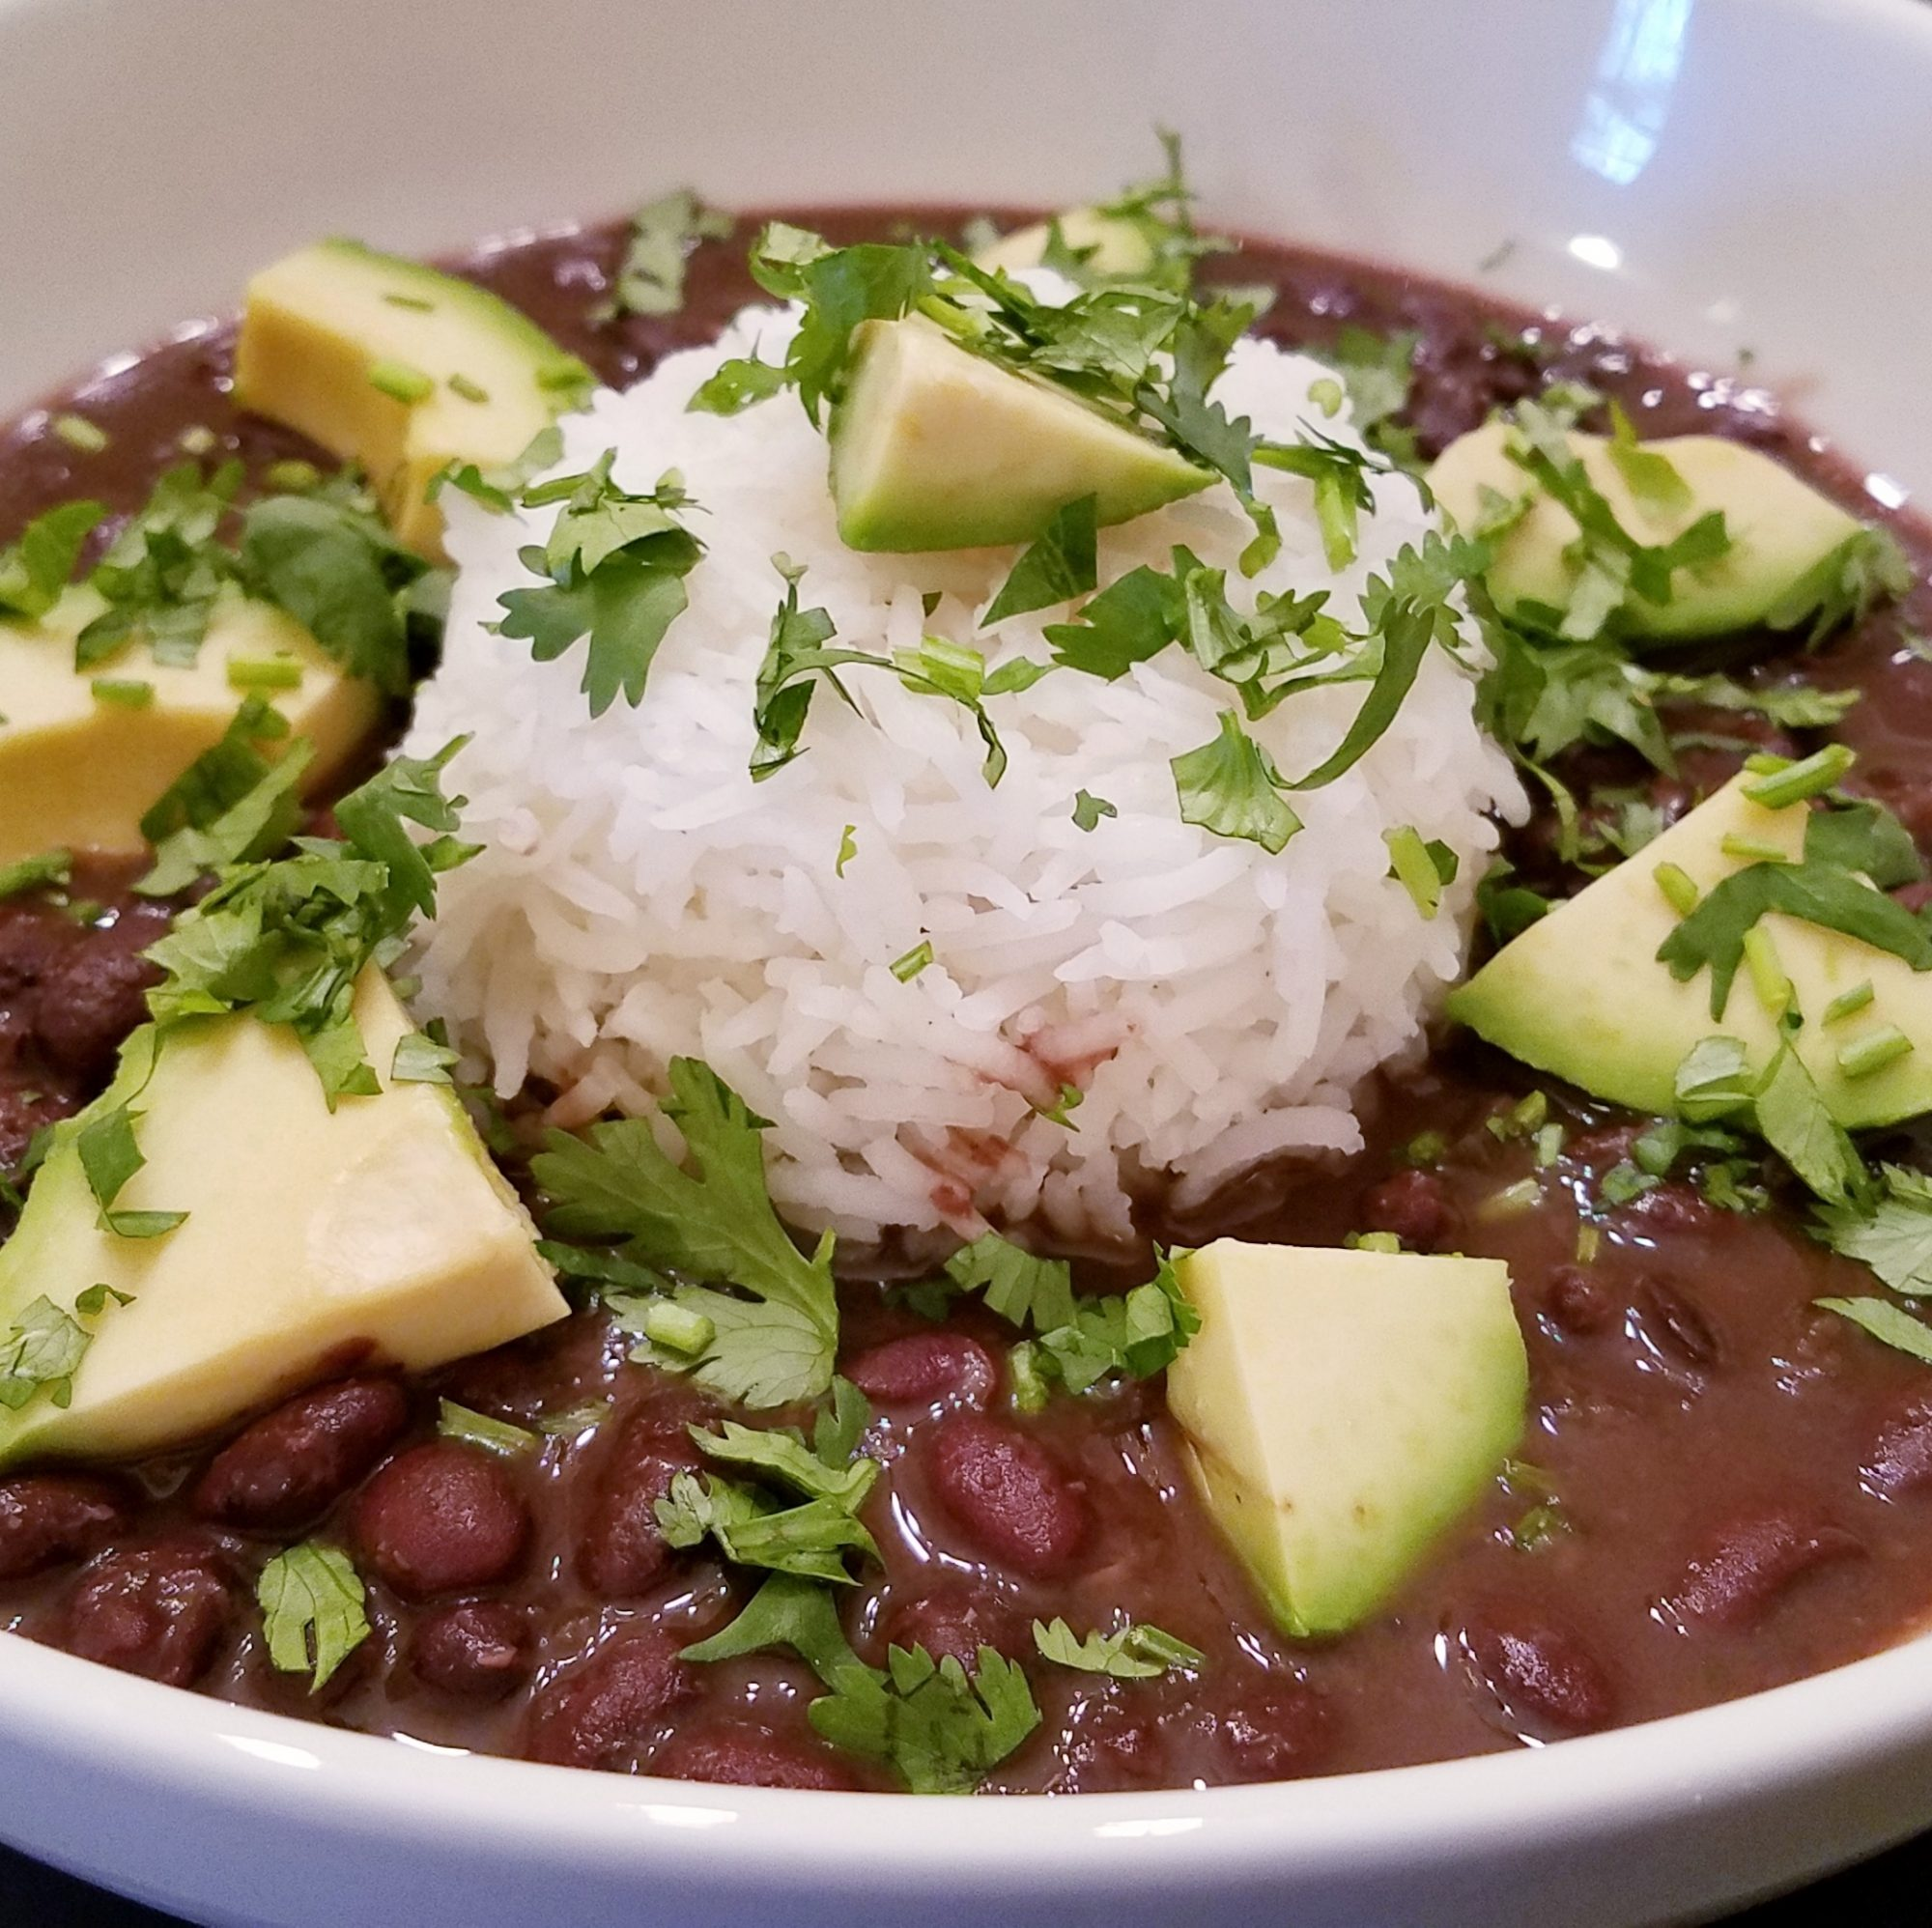 Inexpensive dried black beans become perfectly tender in this slow cooker soup—a great alternative to the usual stovetop chili. Dial back the spices like some reviewers for a milder soup, or top off the bowl with cooling avocado, rice, or sour cream.